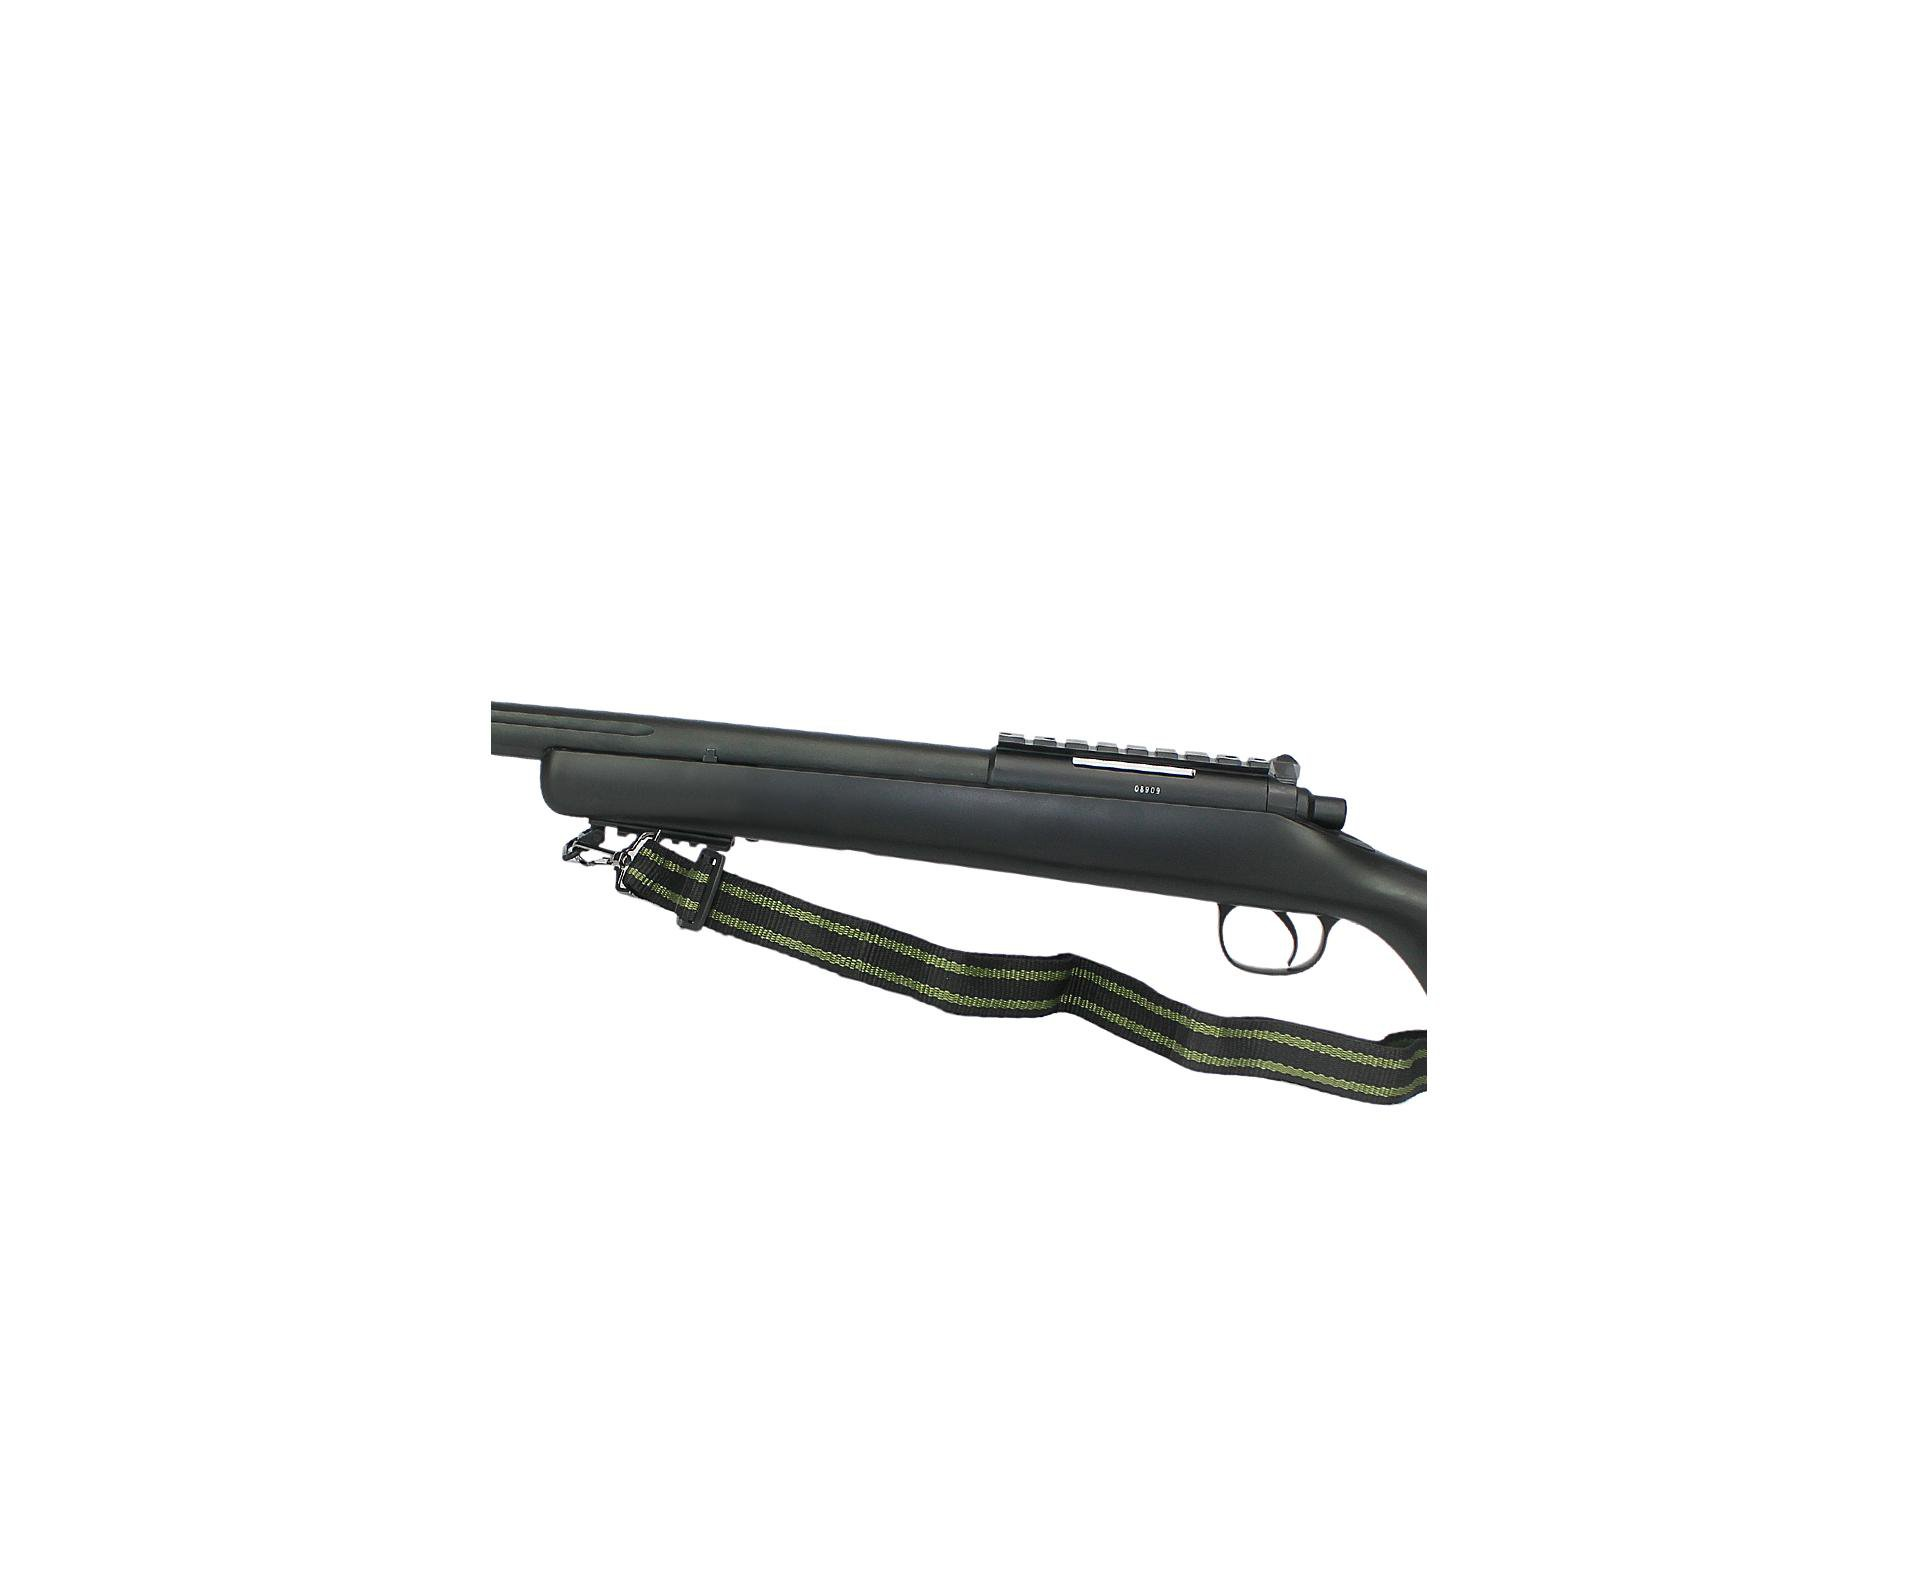 Rifle Airsoft Sniper Spring Vsr-10 Mb-07a Black 6,0mm Well